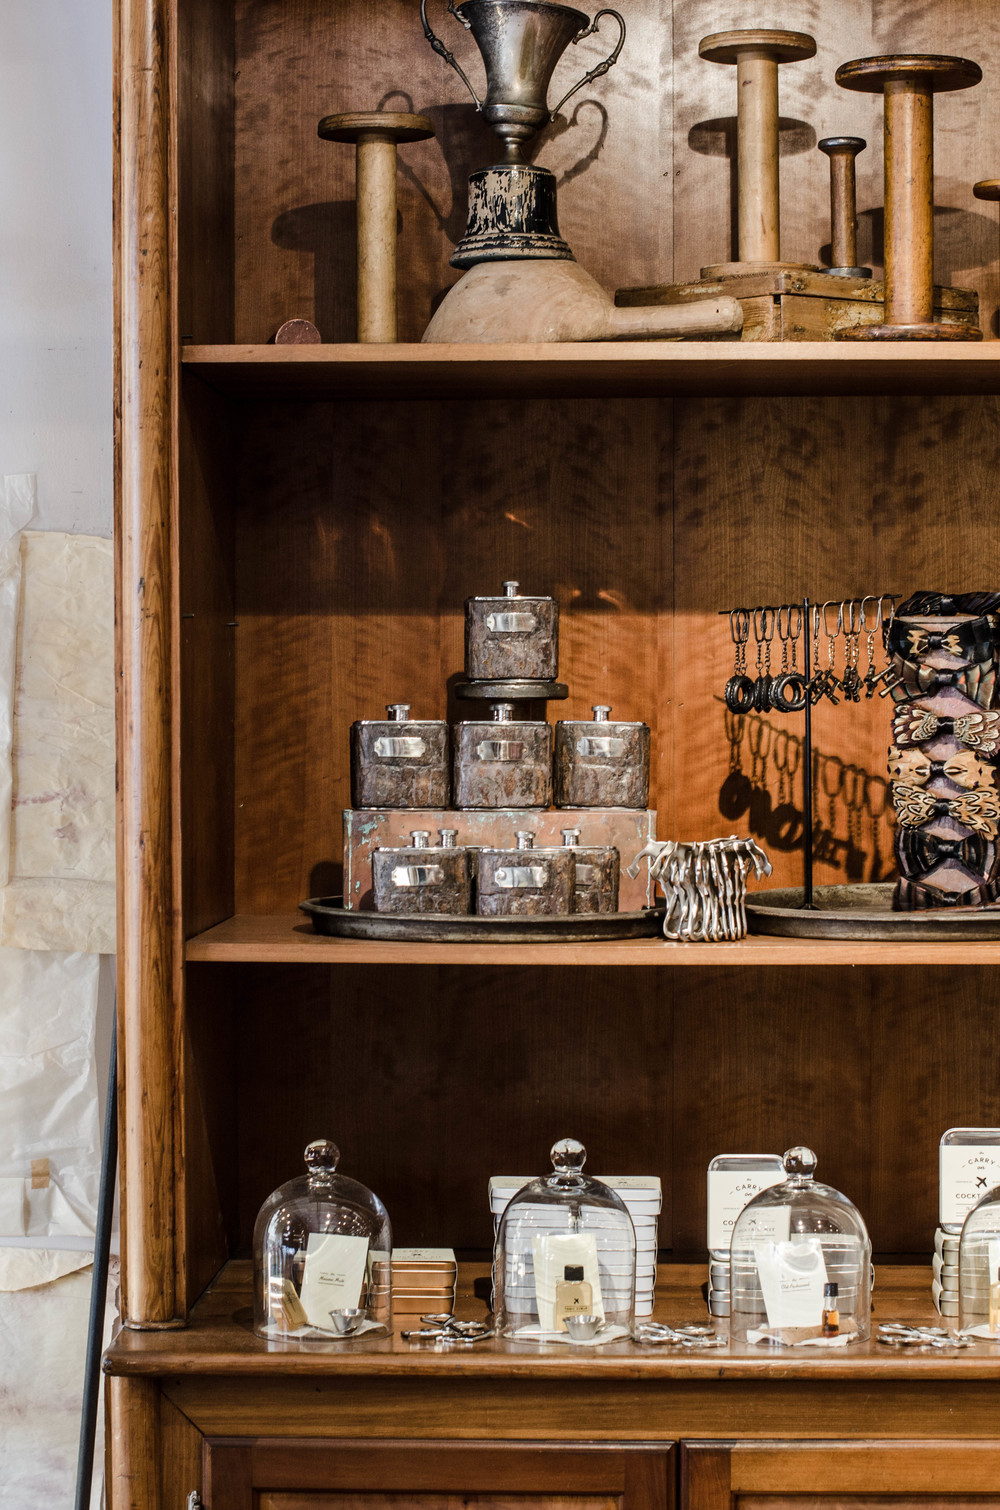 Worthwhile - A curated selection of fragrances and designer clothing